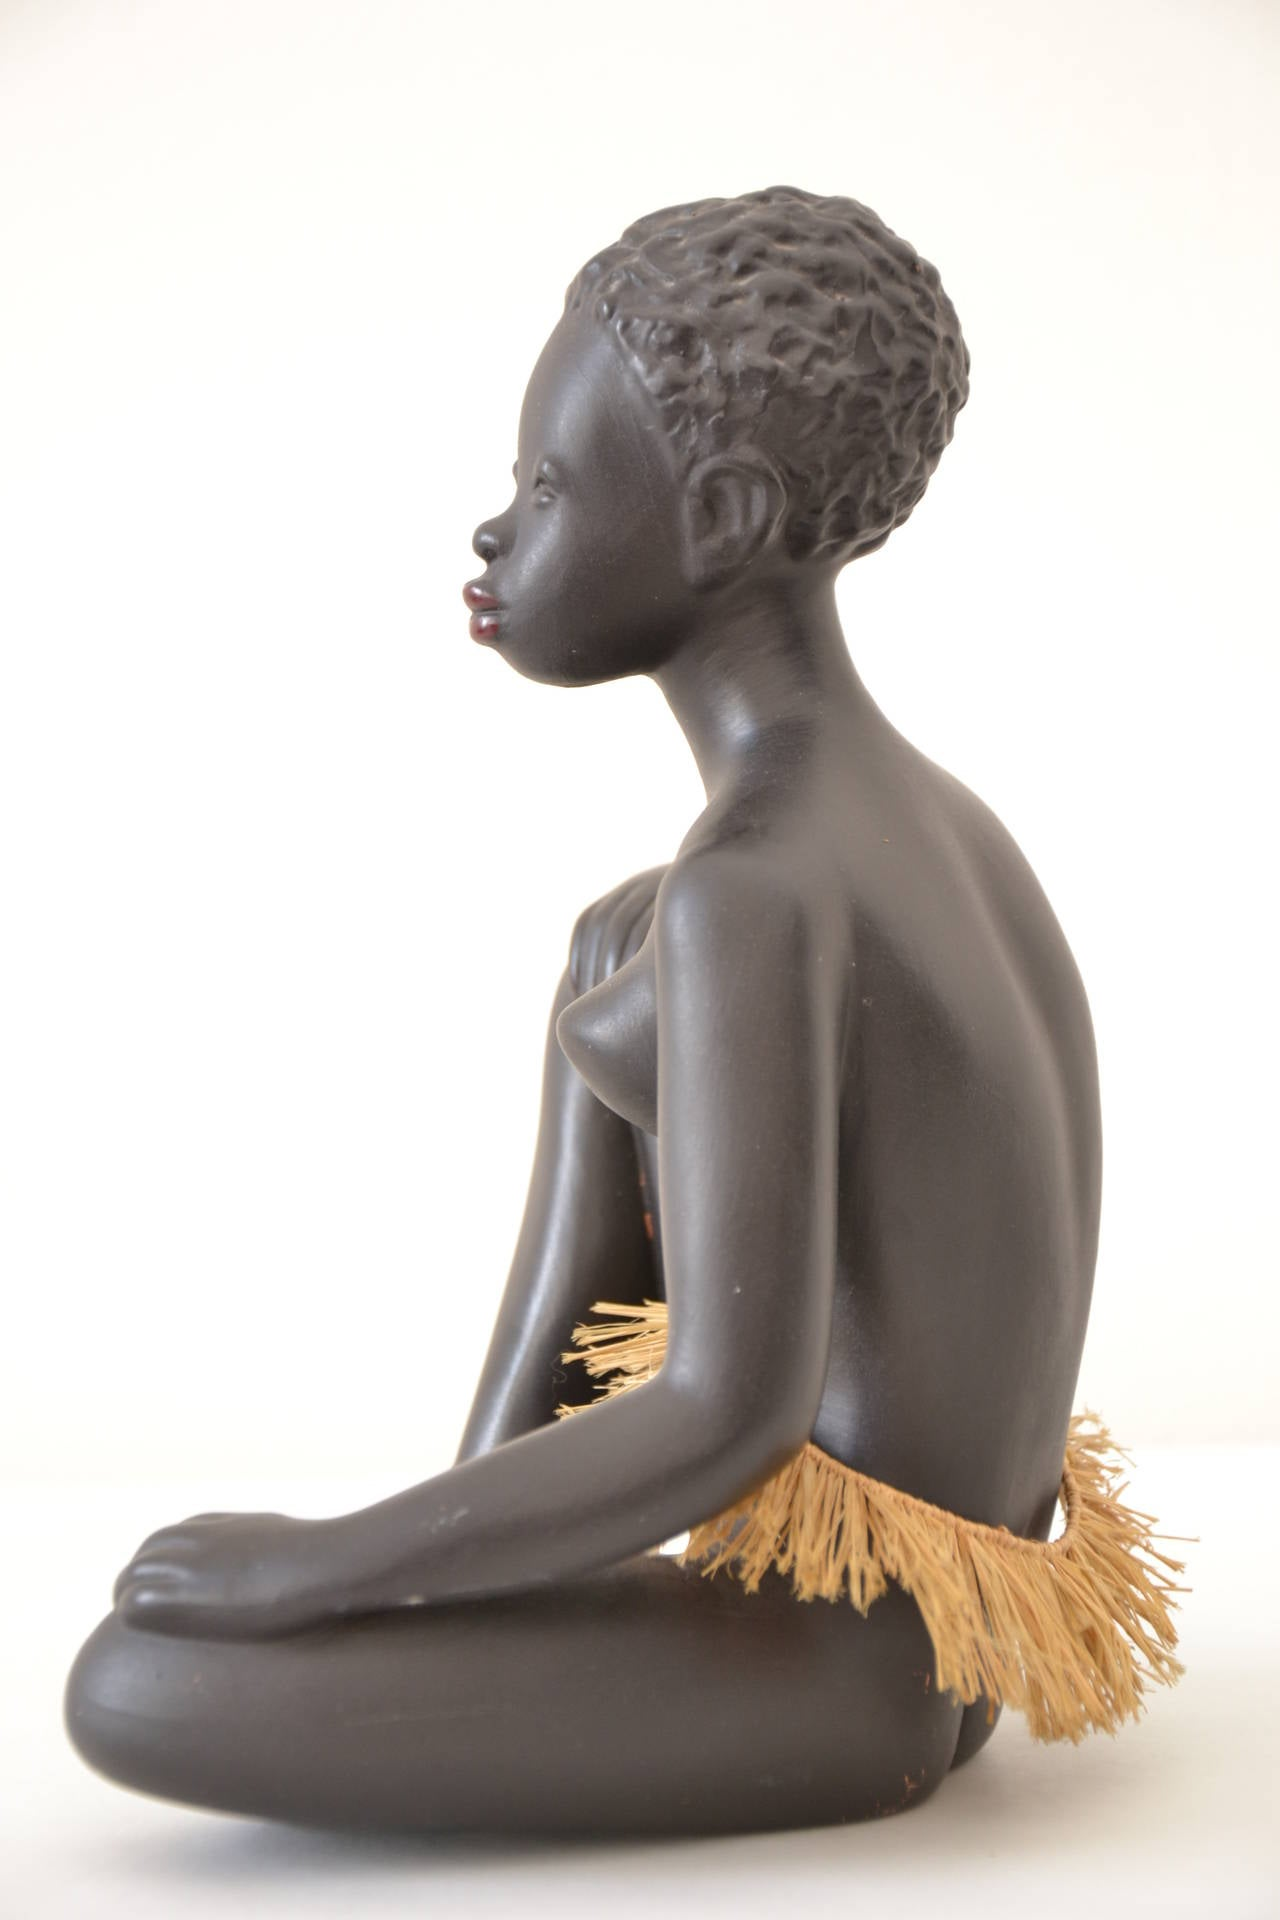 Exotic African Women Sculpture by Leopold Anzengruber, Vienna 1950s 4